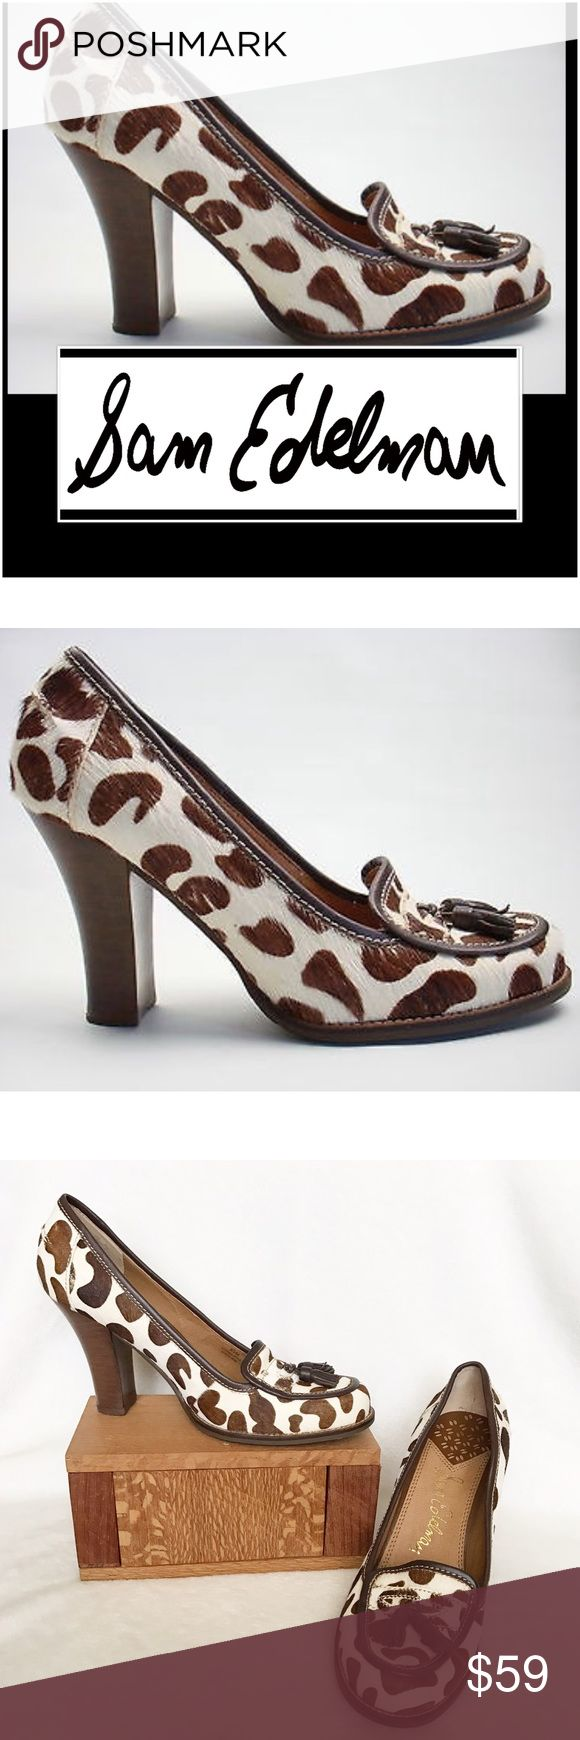 SAM EDELMAN LEOPARDPRINT COWHIDE CHUNKYHEEL PUMPS SAM EDELMAN LEOPARD PRINT COWHIDE CHUNKY HEEL CLASSIC TASSLE PUMP . The Classic leopard ? print in pony hair cowhide makes these Classic style pumps a wonderful addition to your closet .The stacked wooden heel is 3.75 approx measured from the back of the heel A 100% Leather upper with a rubber sole . Size 8.5 M . Preloved worn once in excellent condition. The only flaws are on the inside I had insoles that I removed and they removed a bit of…